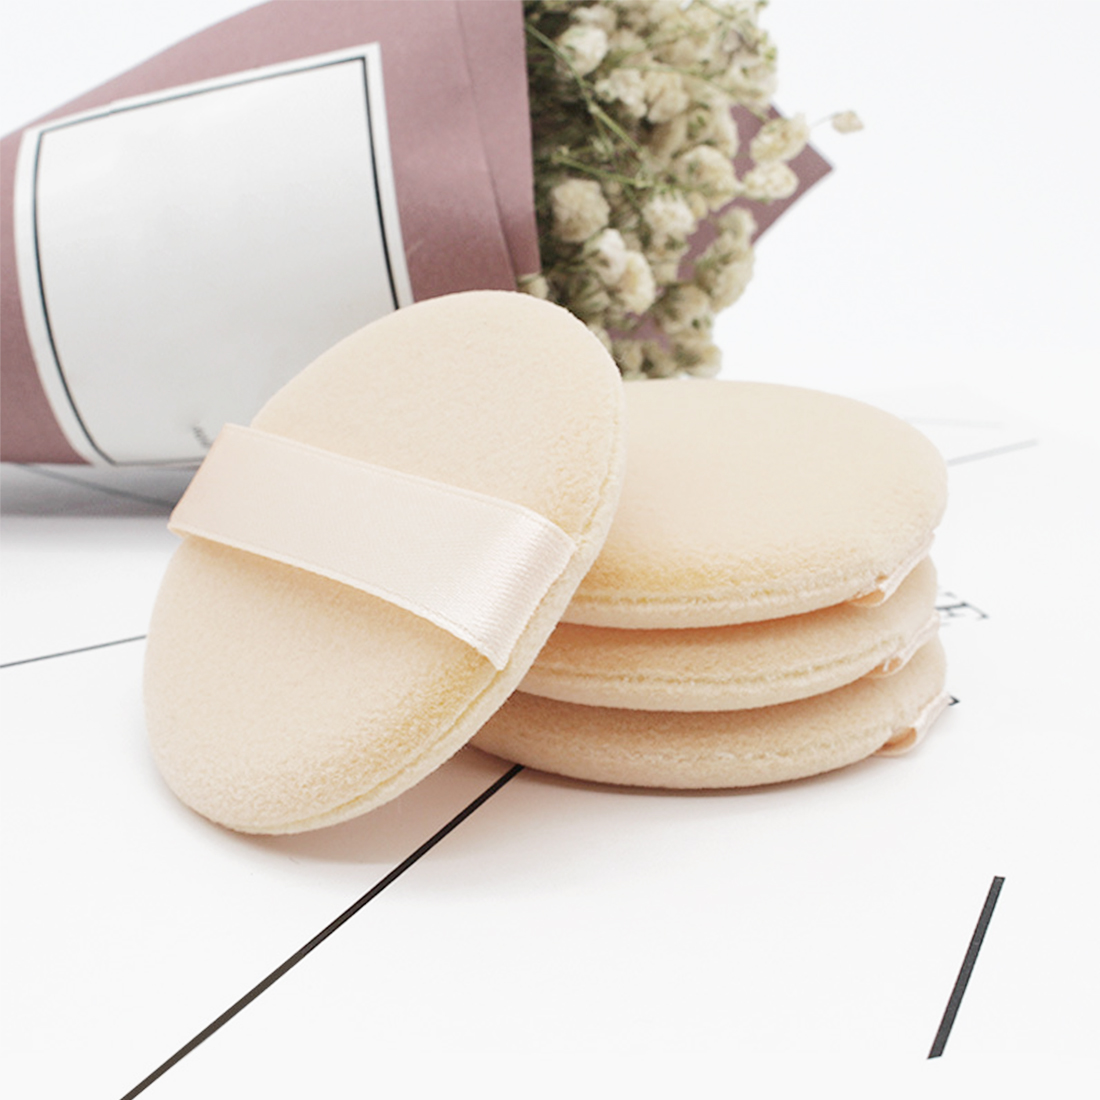 Skin-friendly Organic Cotton Pads Face Smooth Beauty 5PCS Woolen Cloth Soft Foundation Powder Cosmetic Puff Makeup Sponge Puff image